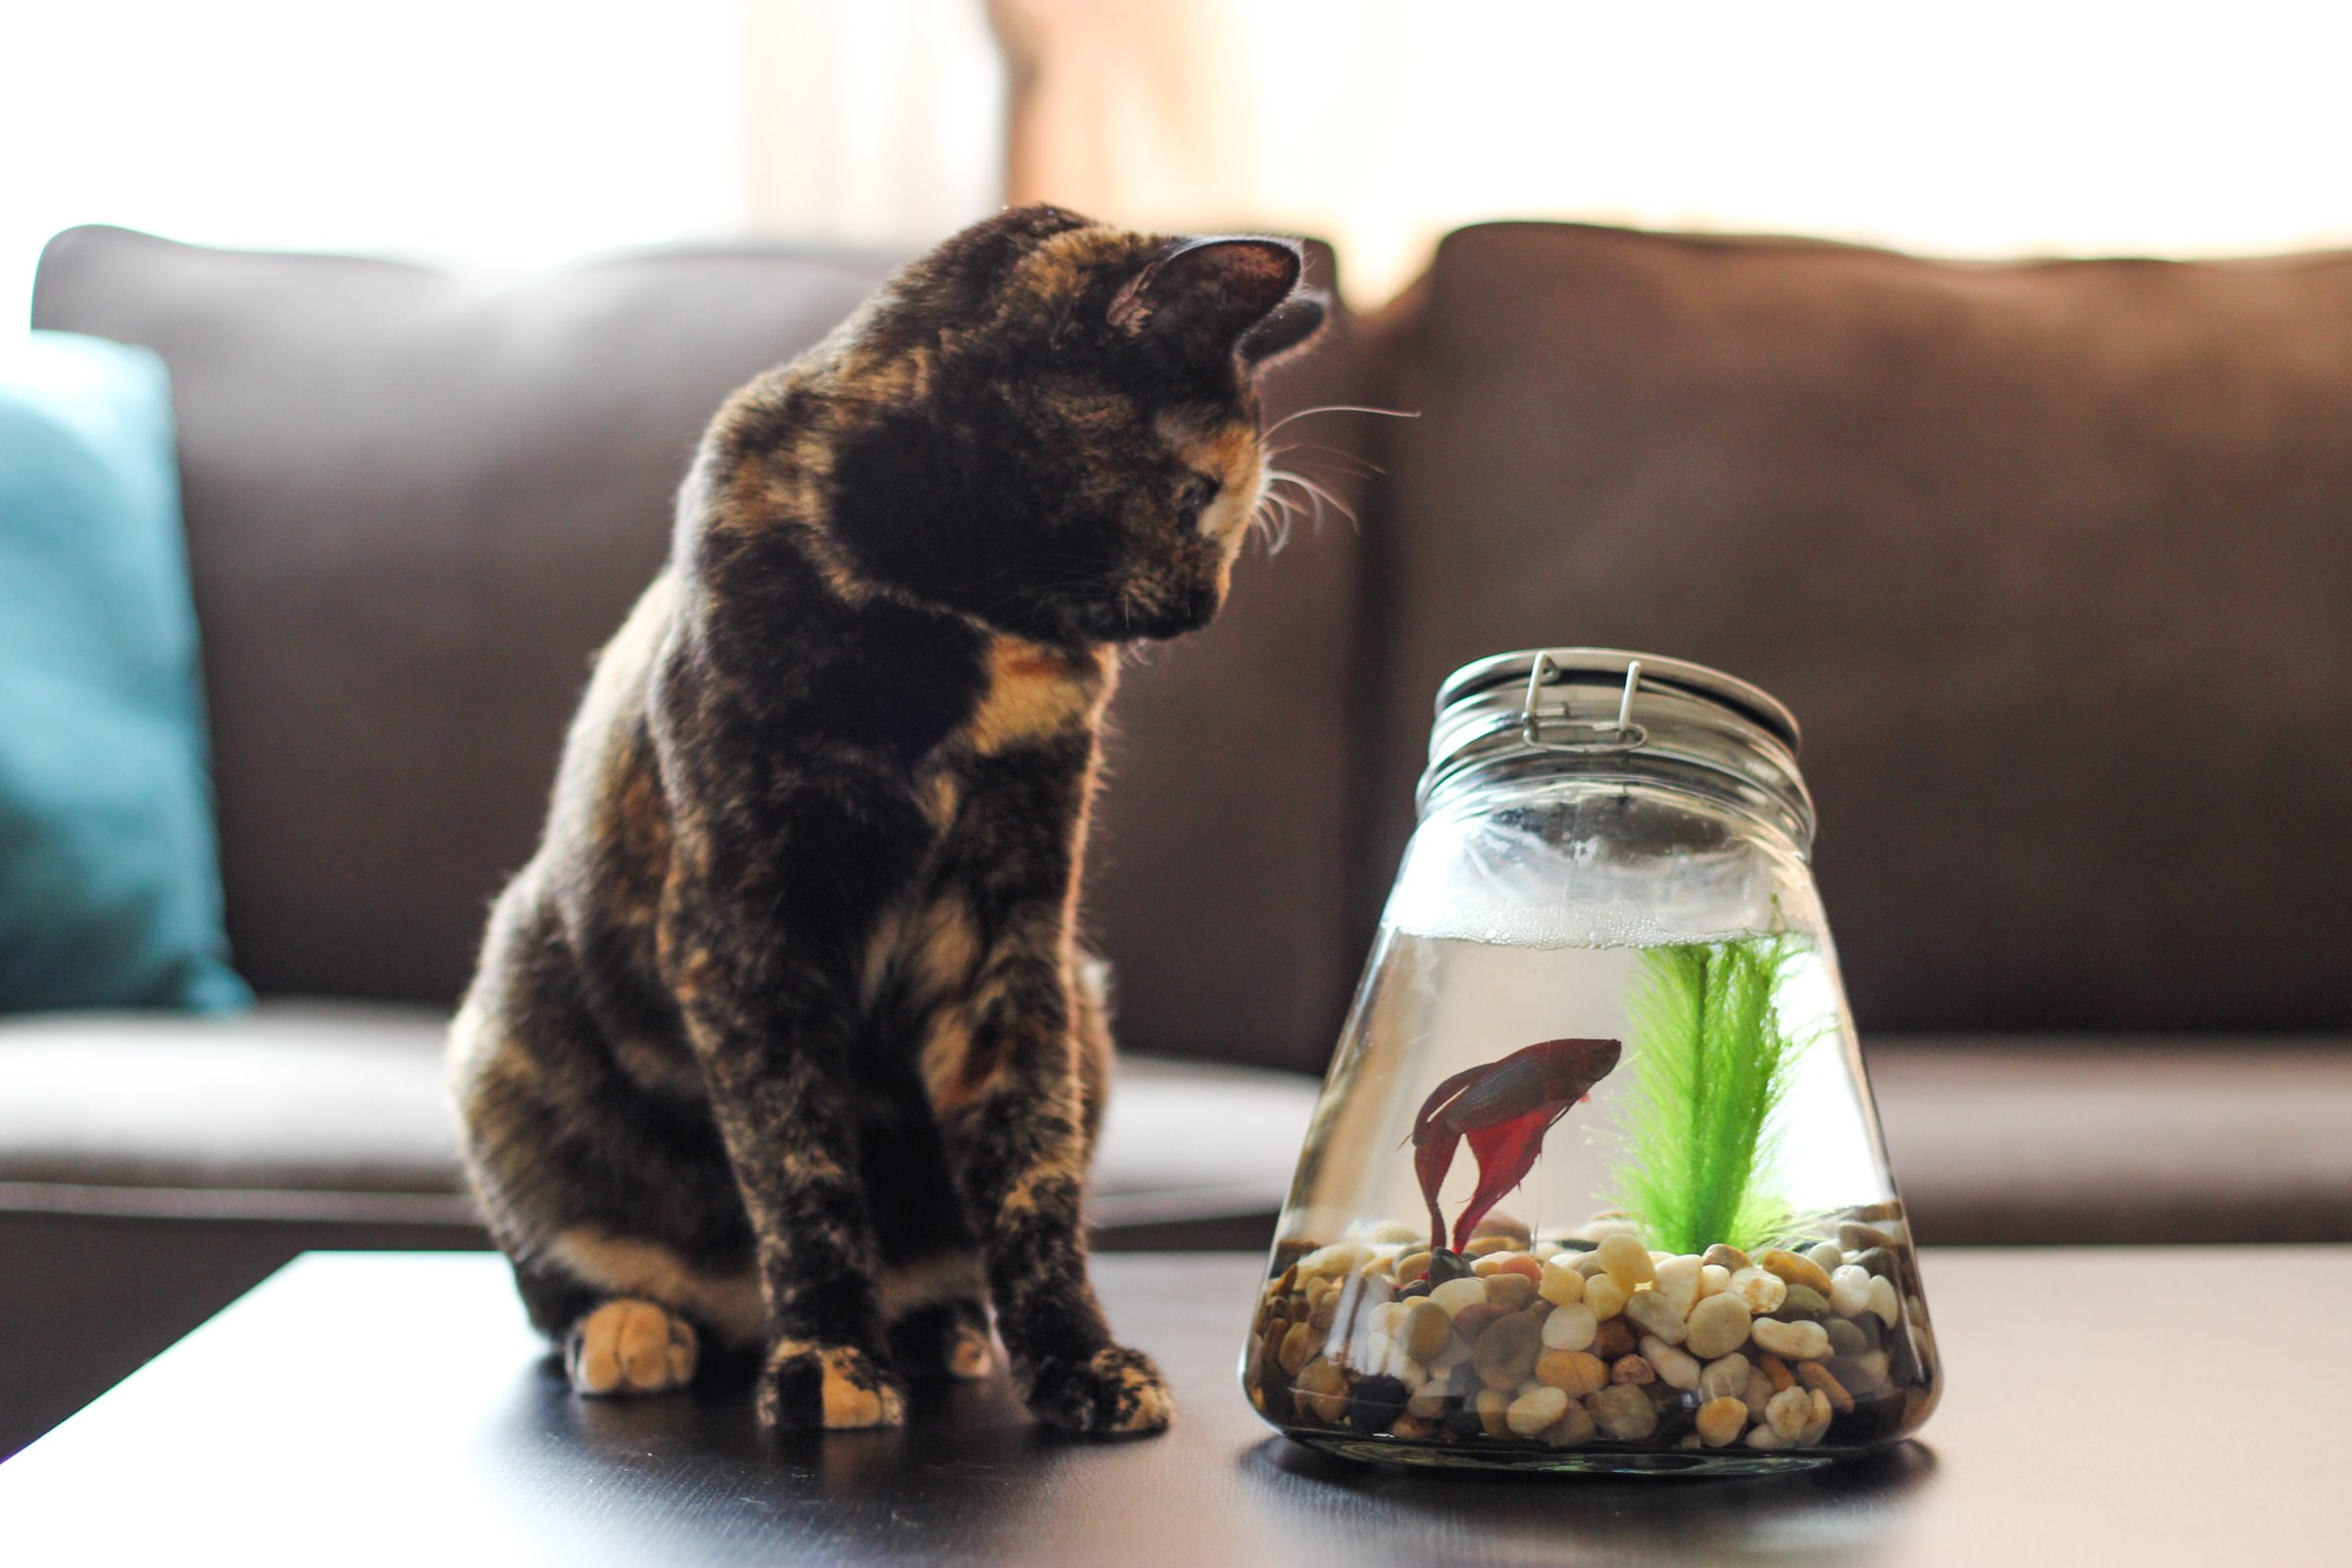 Thrifty Bowl Free Stock Photo Cat On Table Watching Betta Fish Cat On Table Watching Betta Fish Bowl Betta Fish Bowl Ideas Betta Fish Bowl Setup houzz-02 Betta Fish Bowl